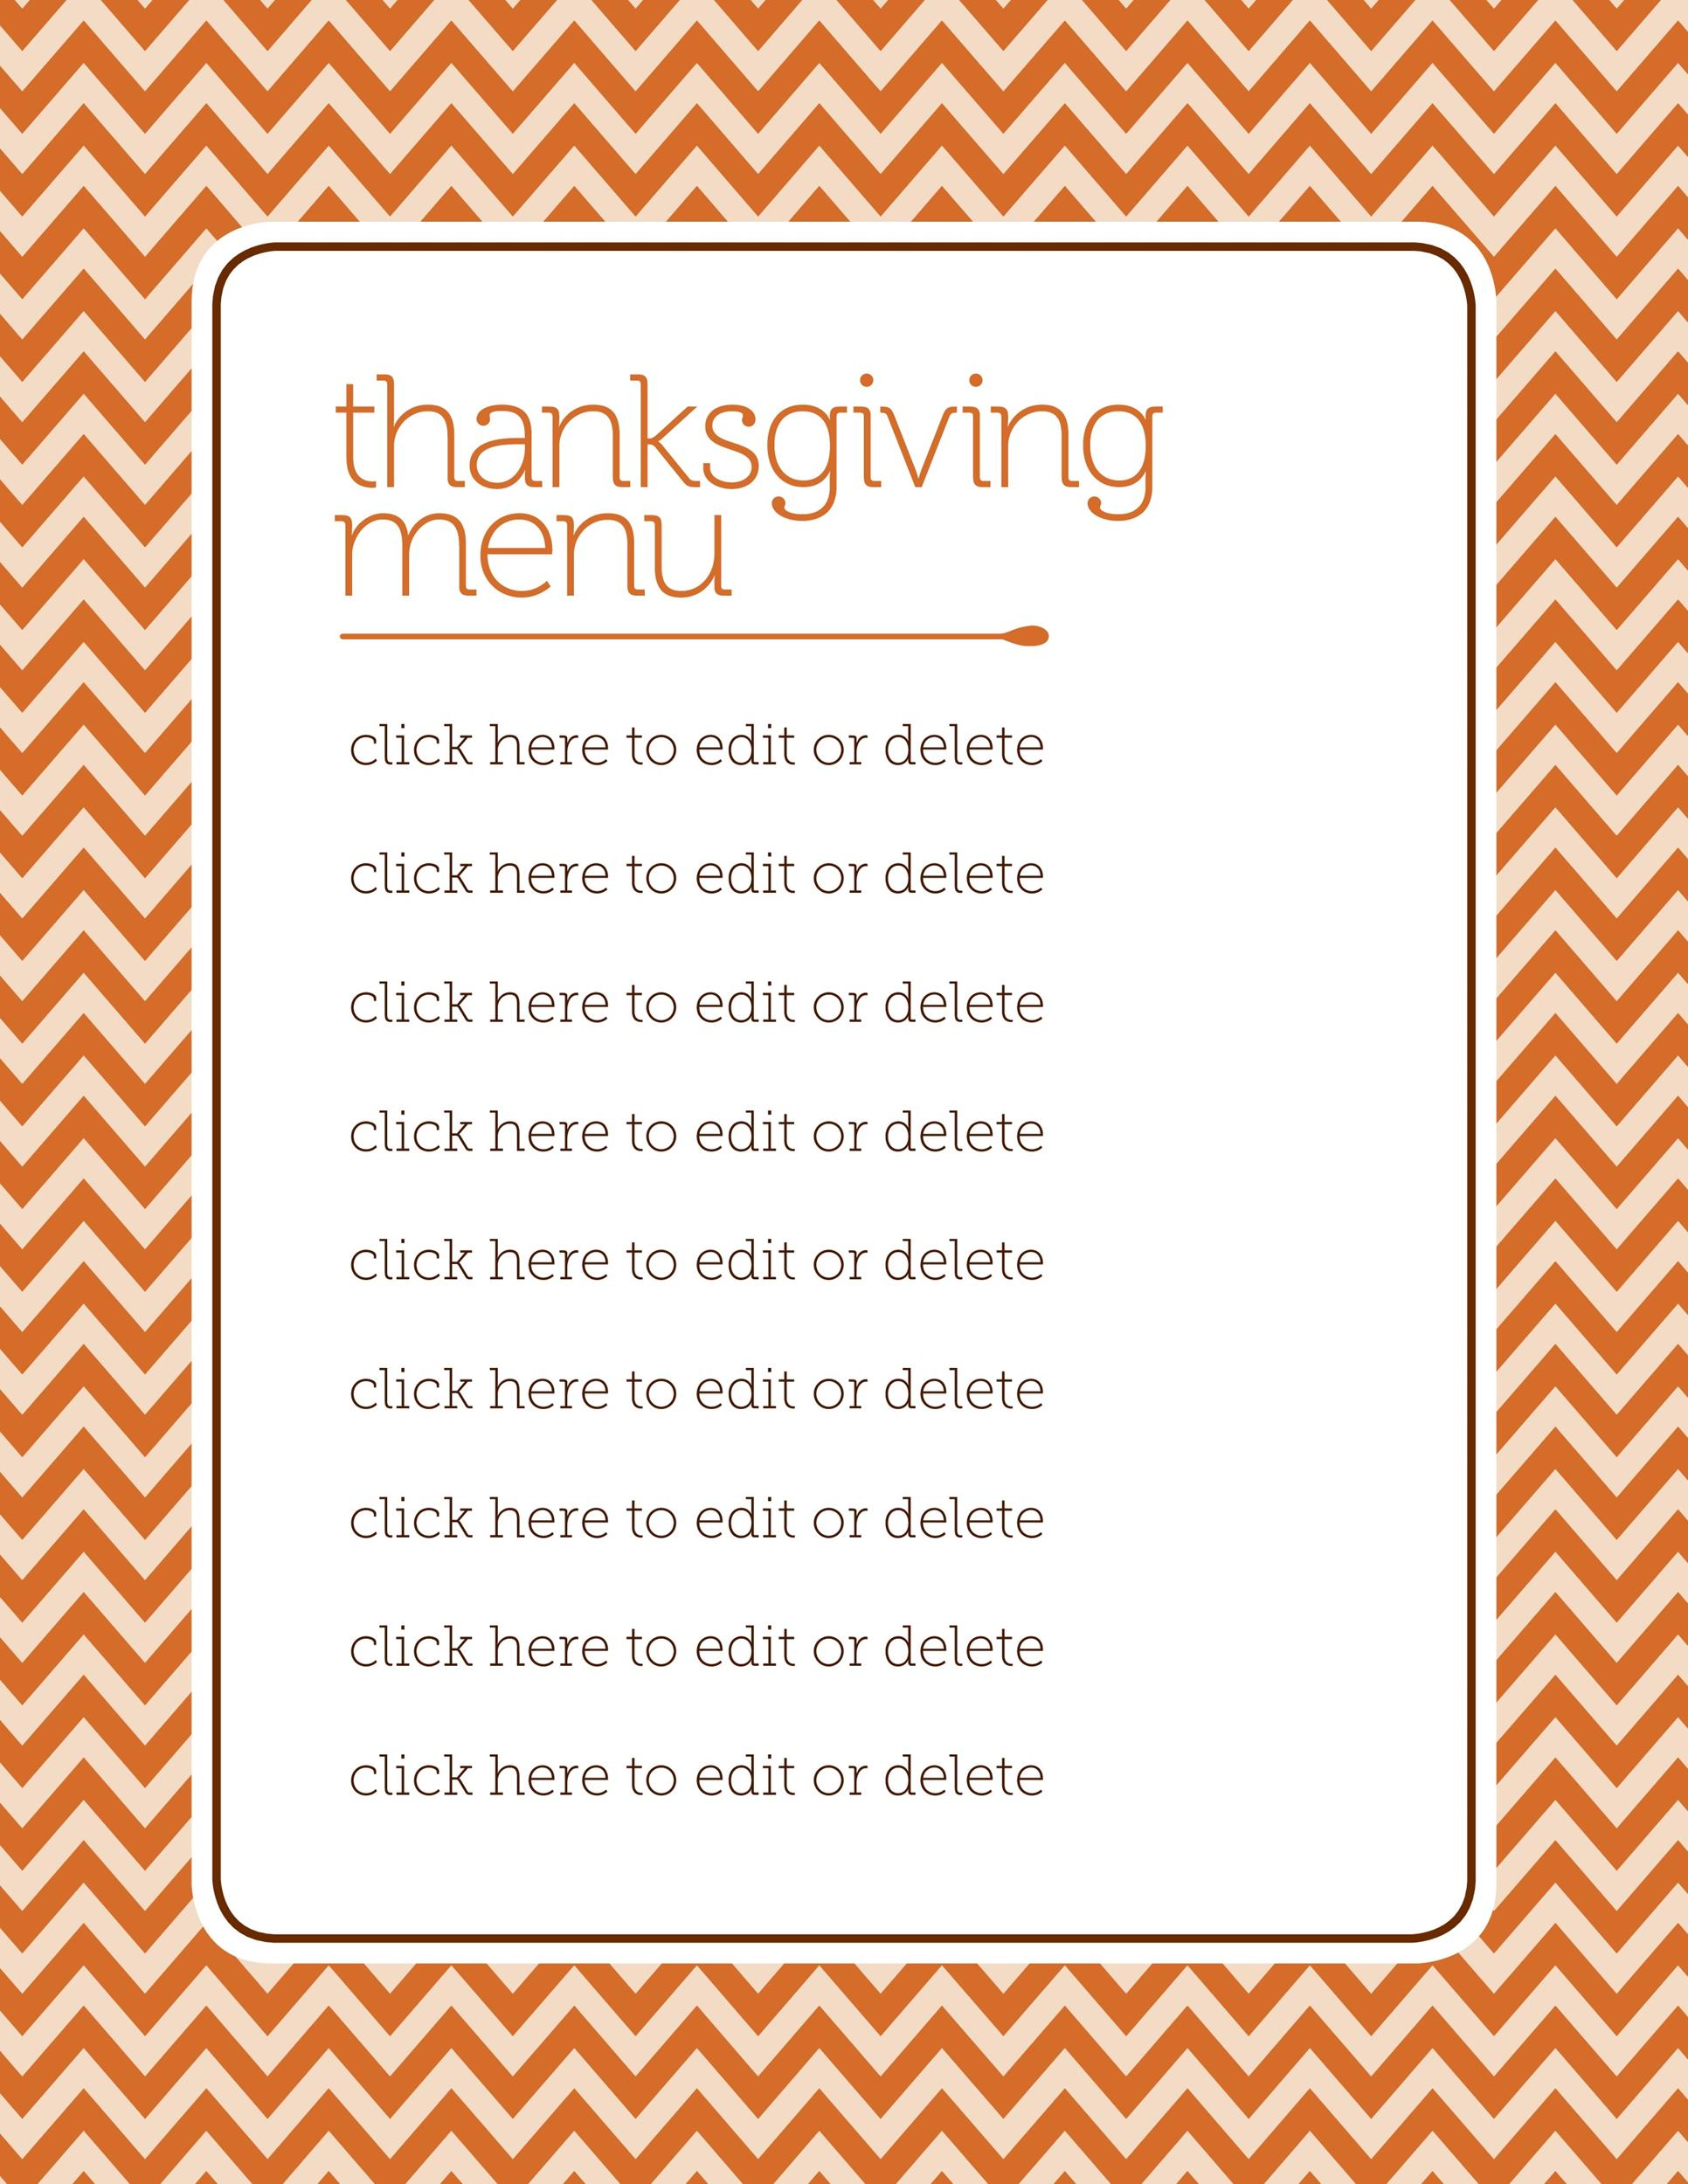 Free thanksgiving menu template 22